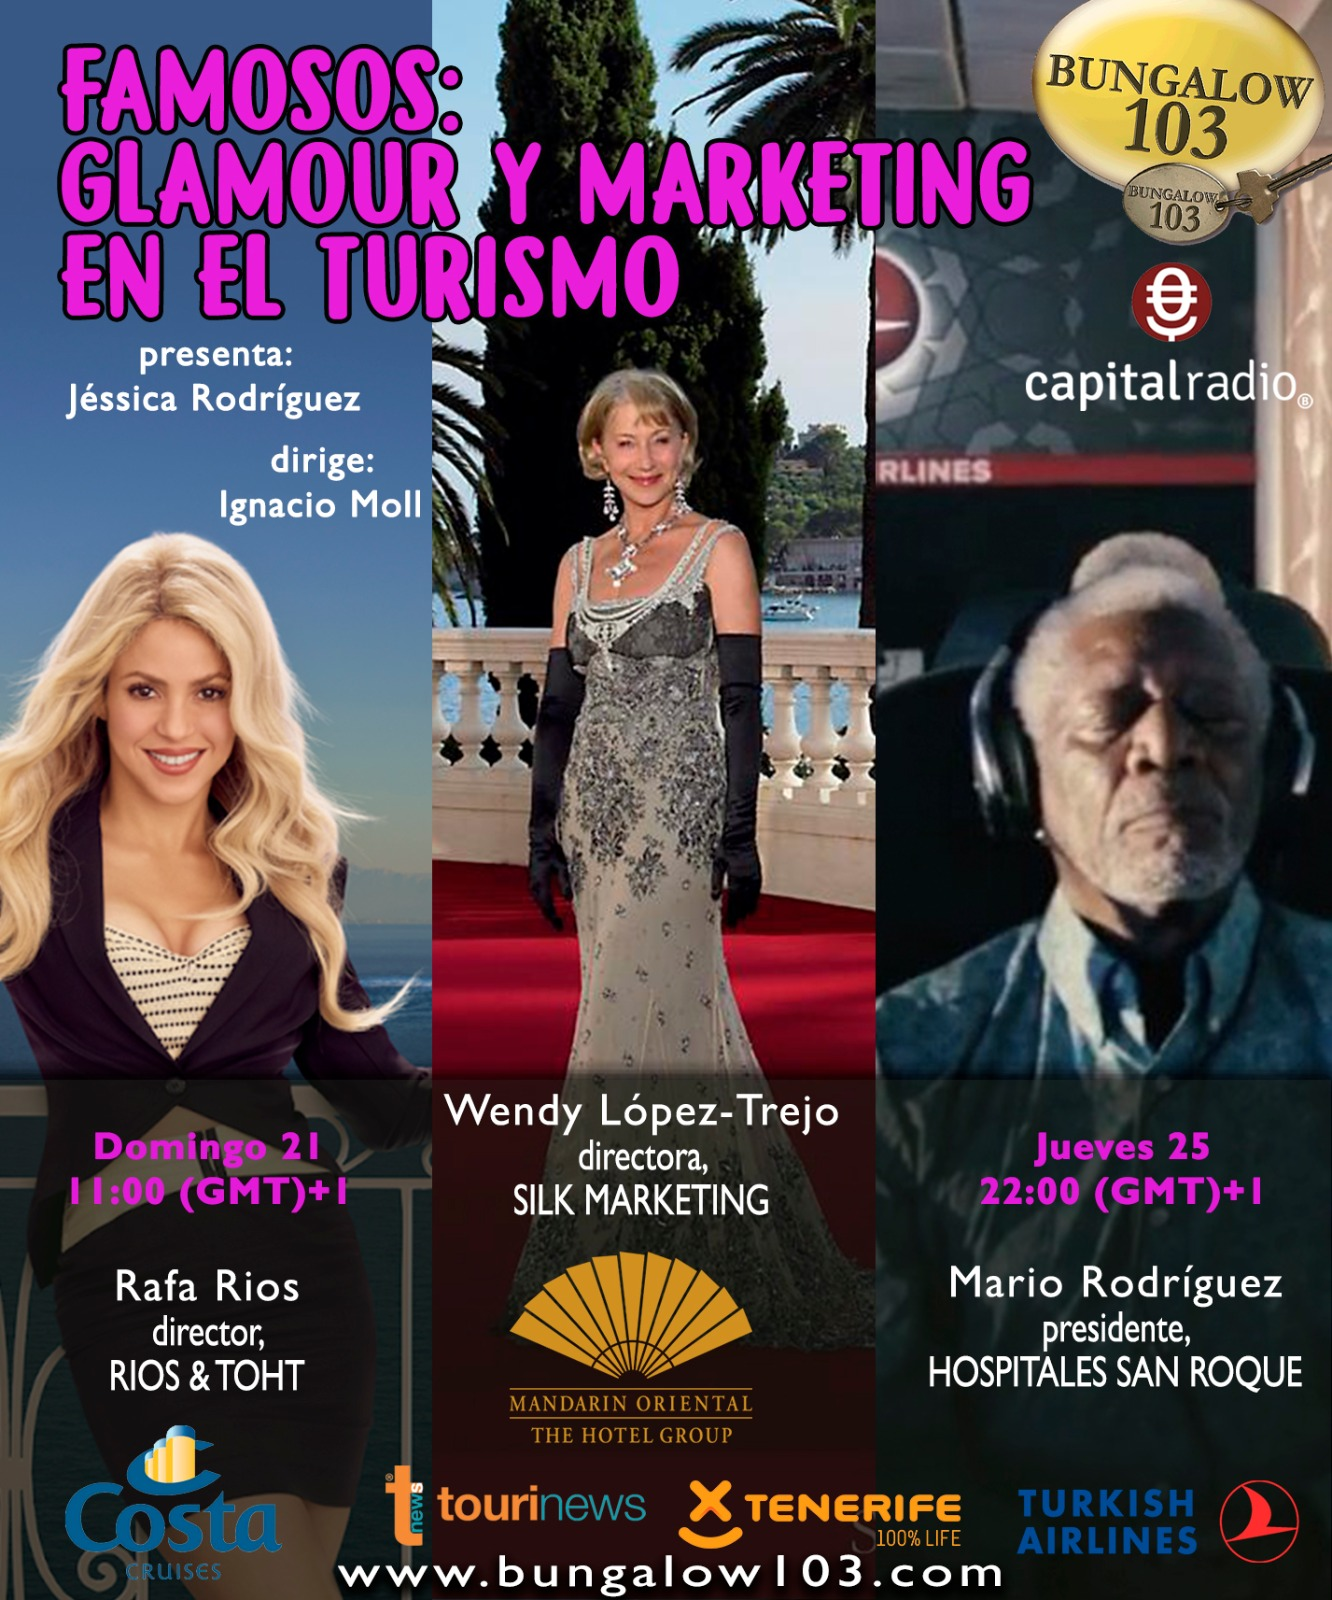 FAMOSOS: GLAMOUR Y MARKETING EN EL TURISMO